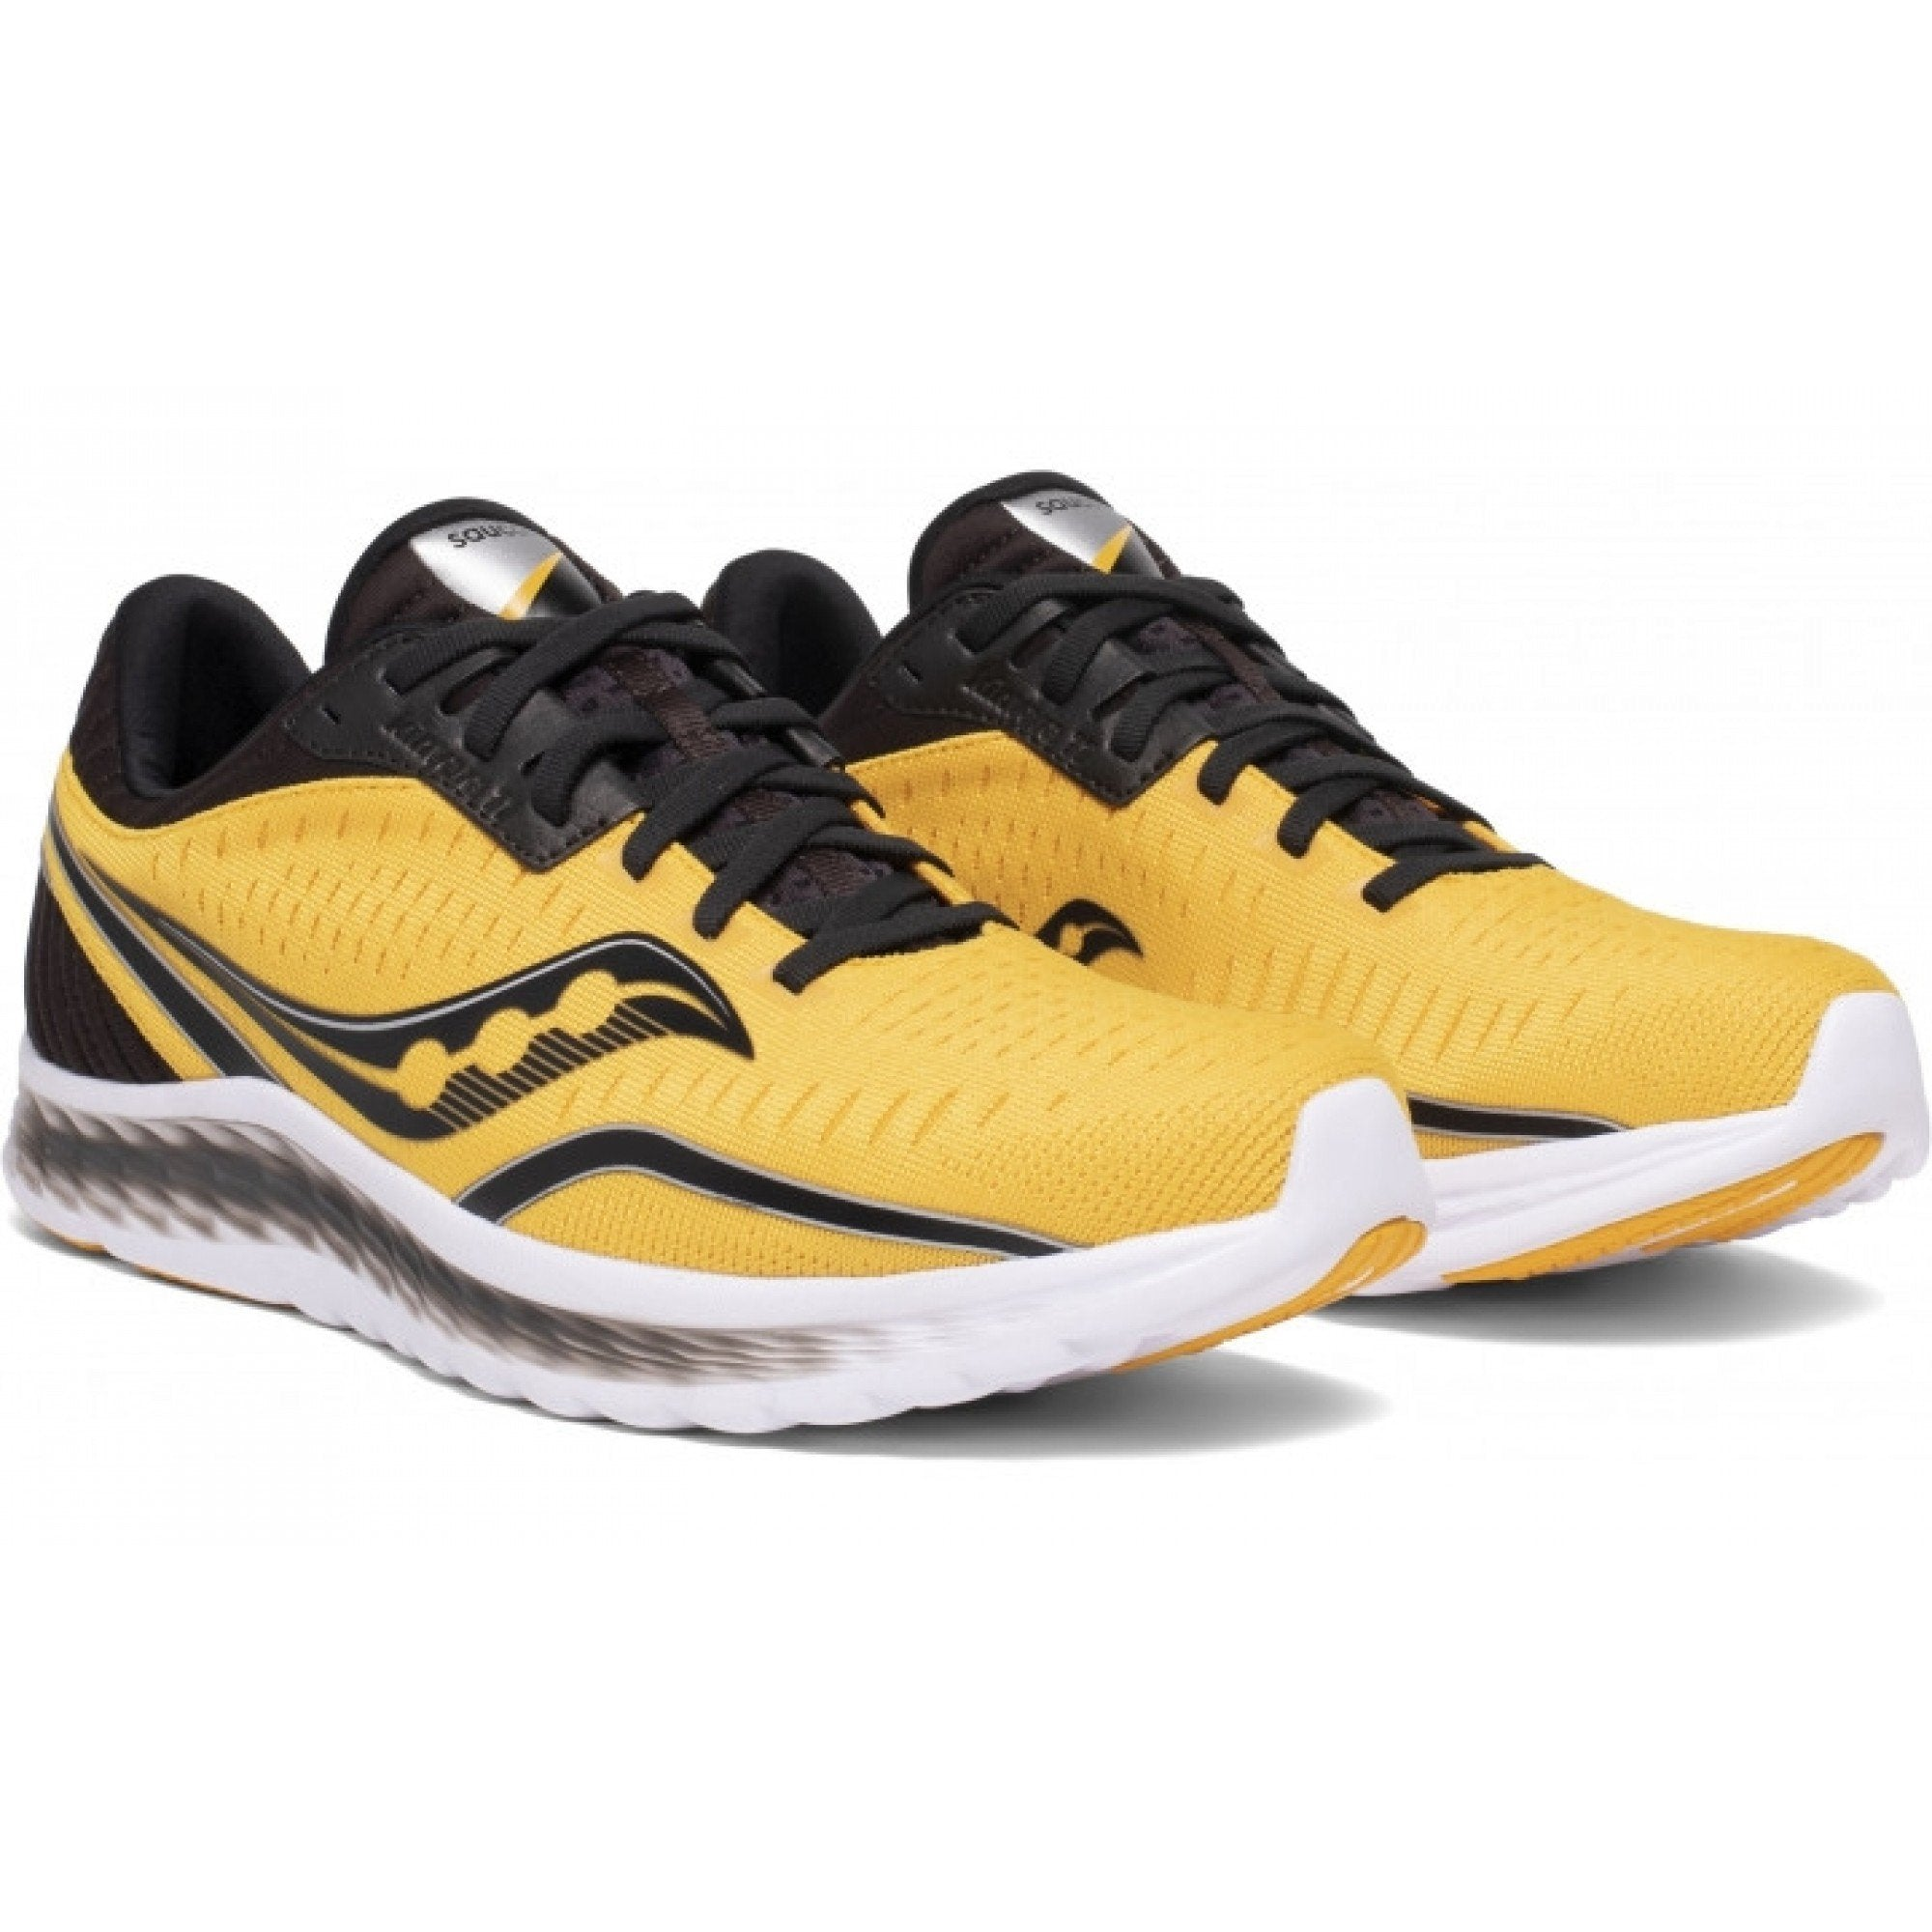 Saucony Kinvara 11 Mens - Sole Motive